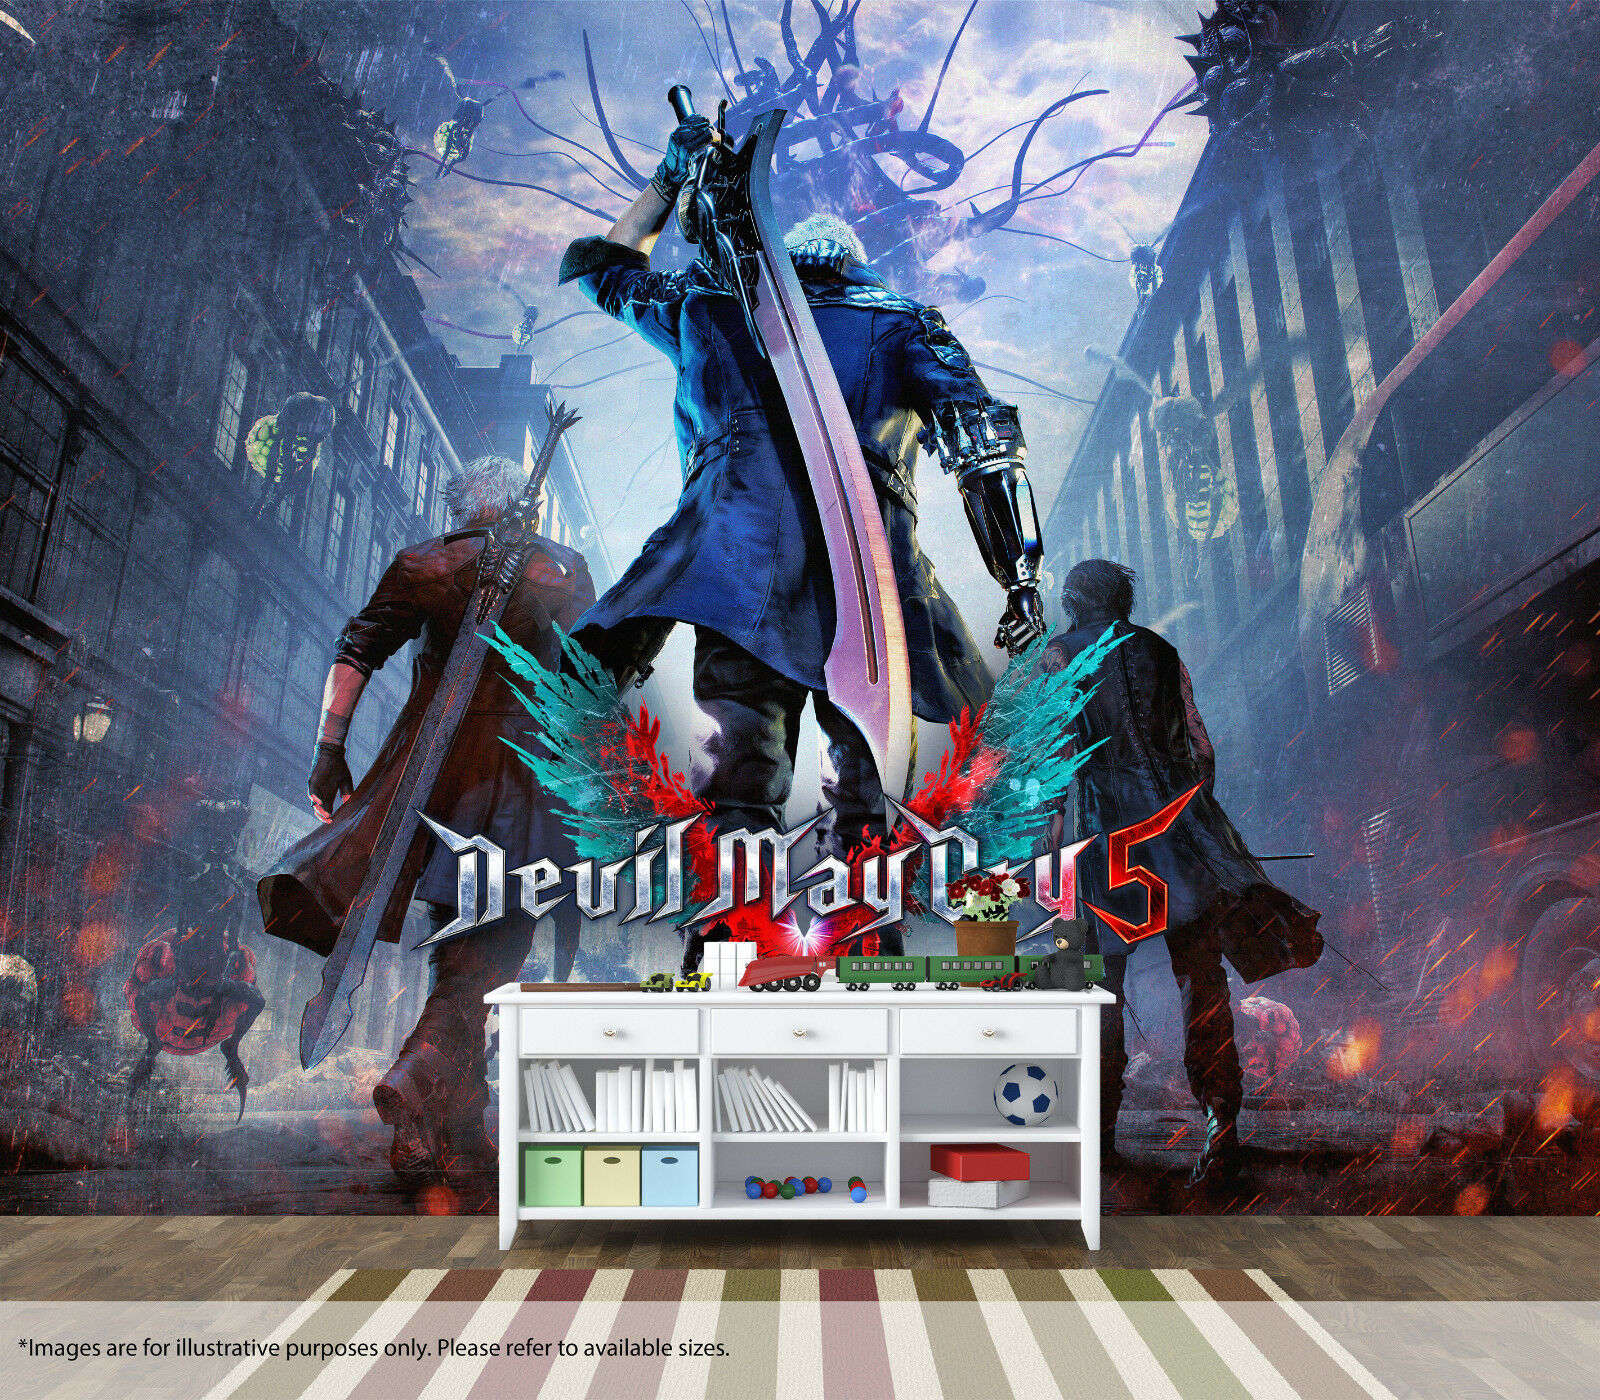 Devil May Cry Gamer Wall Art Mural Quality Pastable Wallpaper Bedroom Decor